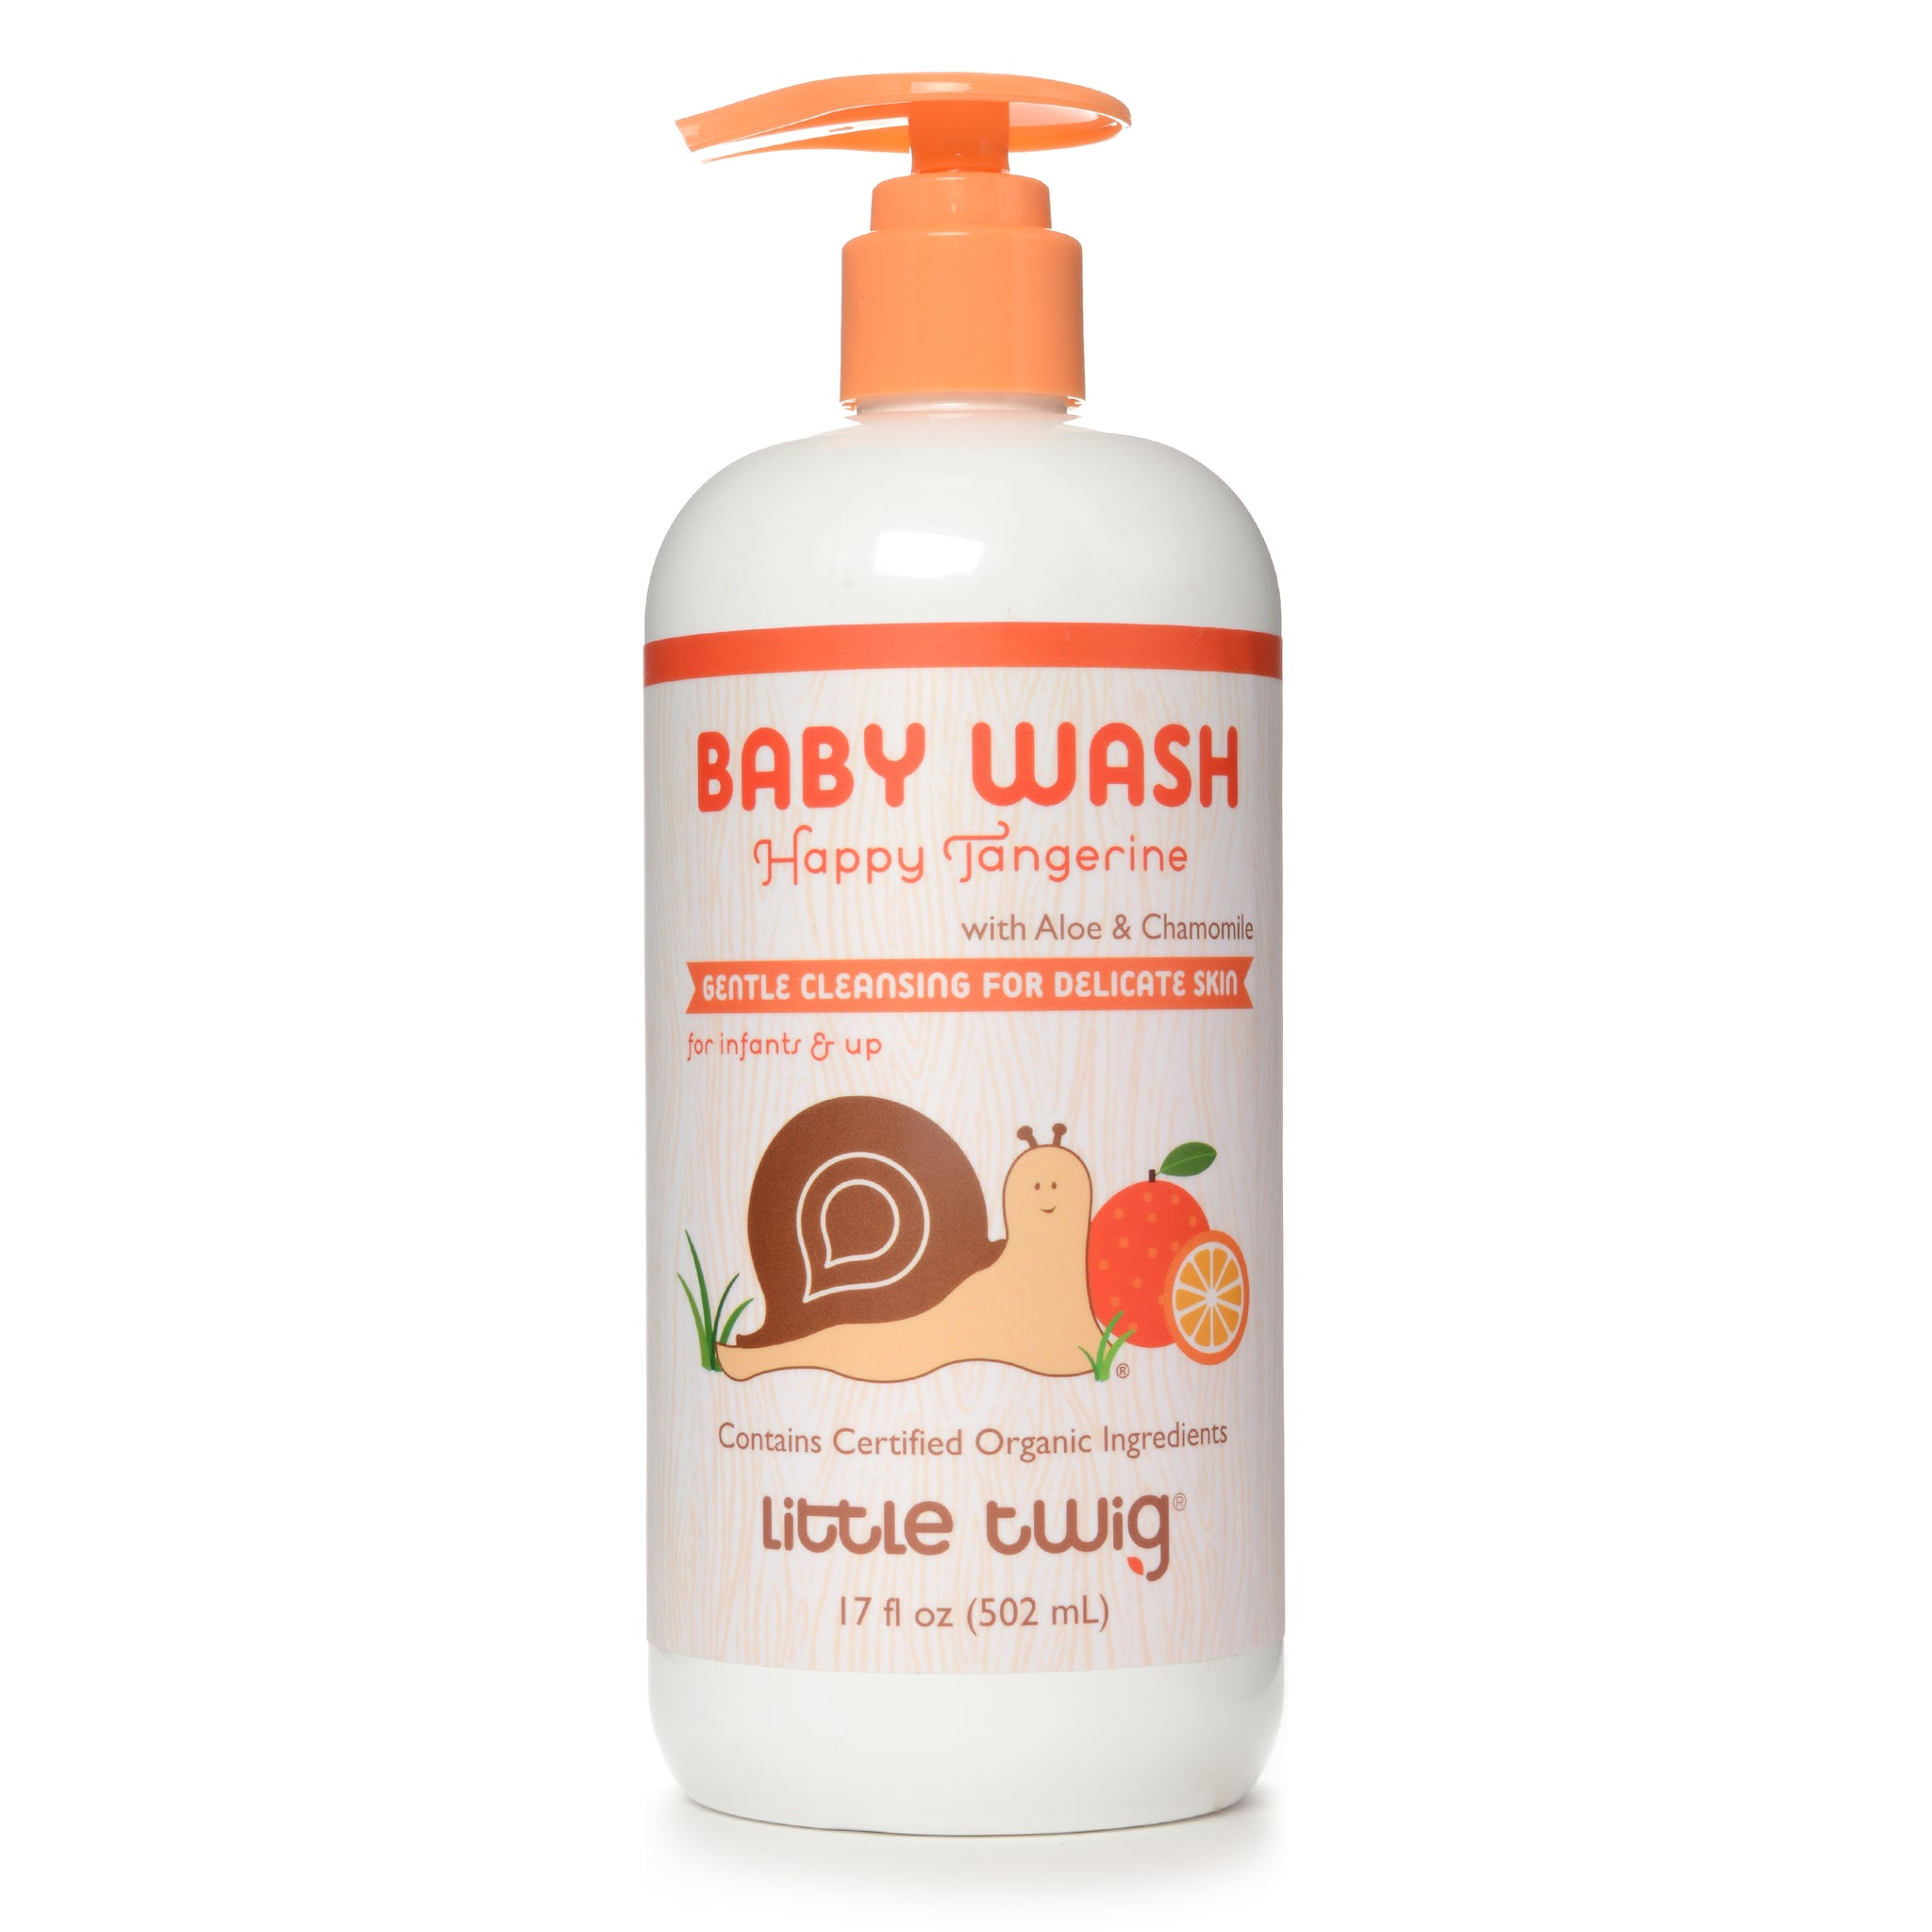 Happy Tangerine Baby Wash 2-in-1